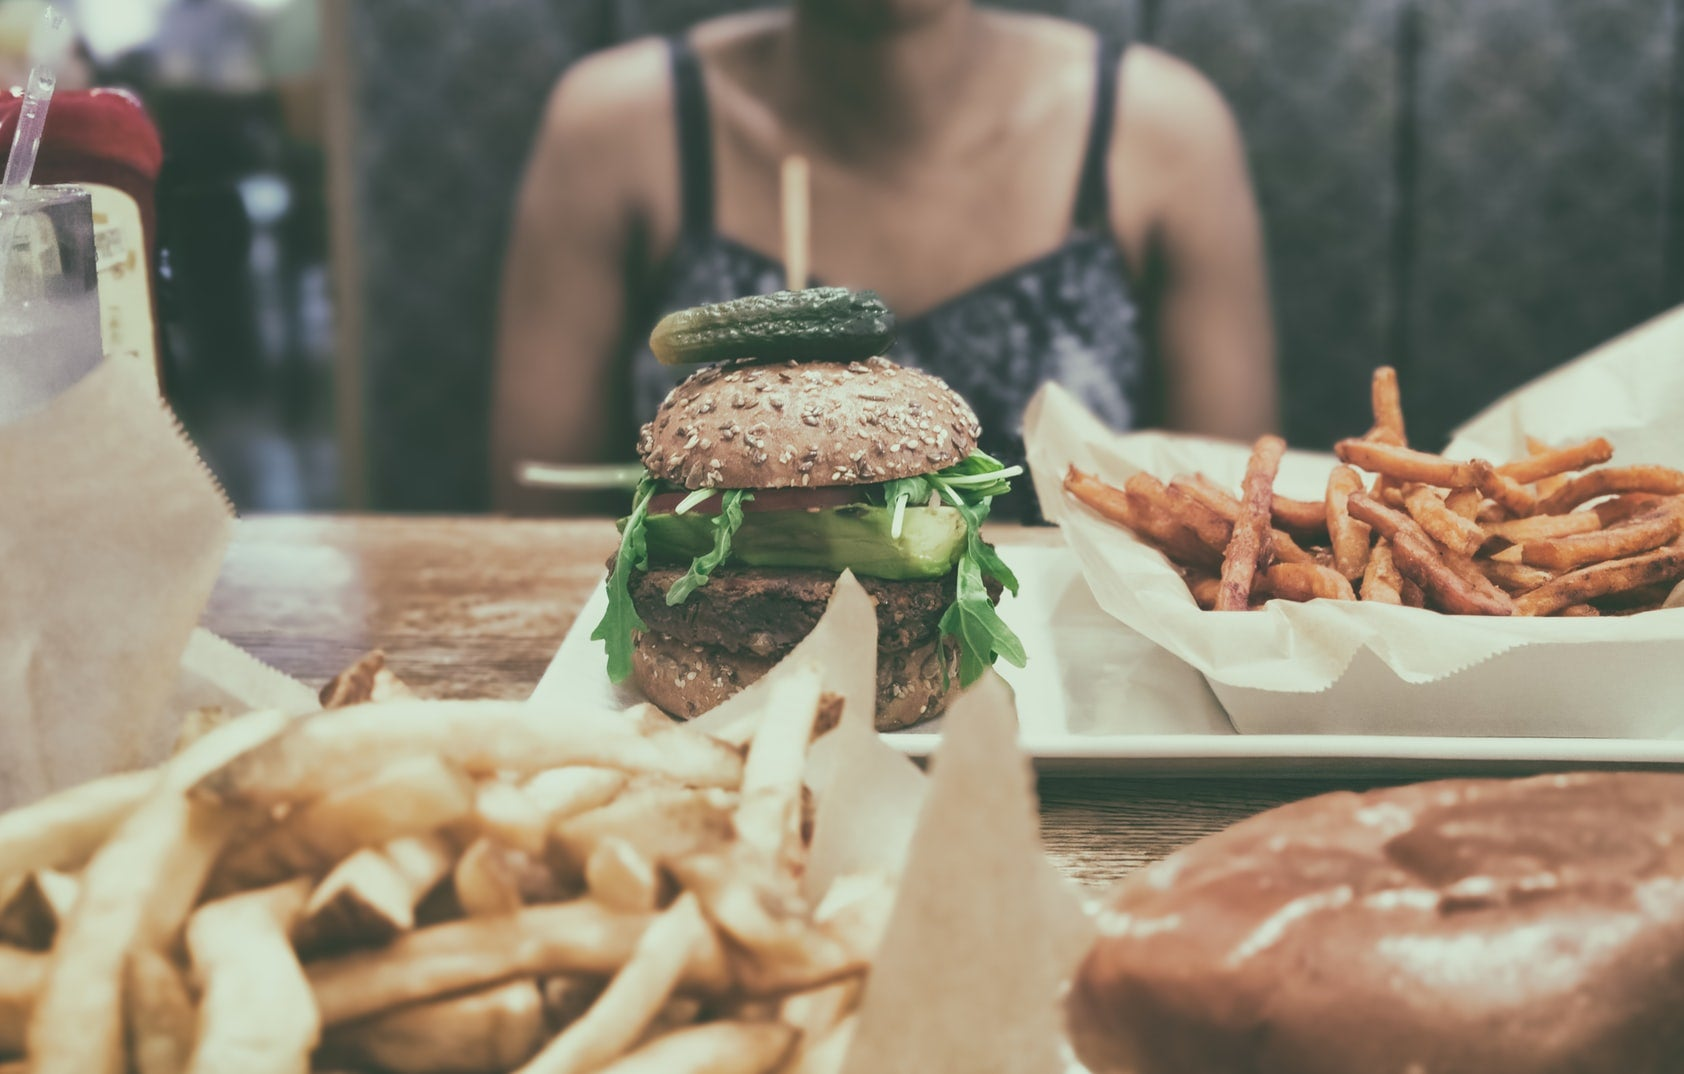 A person sits at a table that has a burger and chips on it